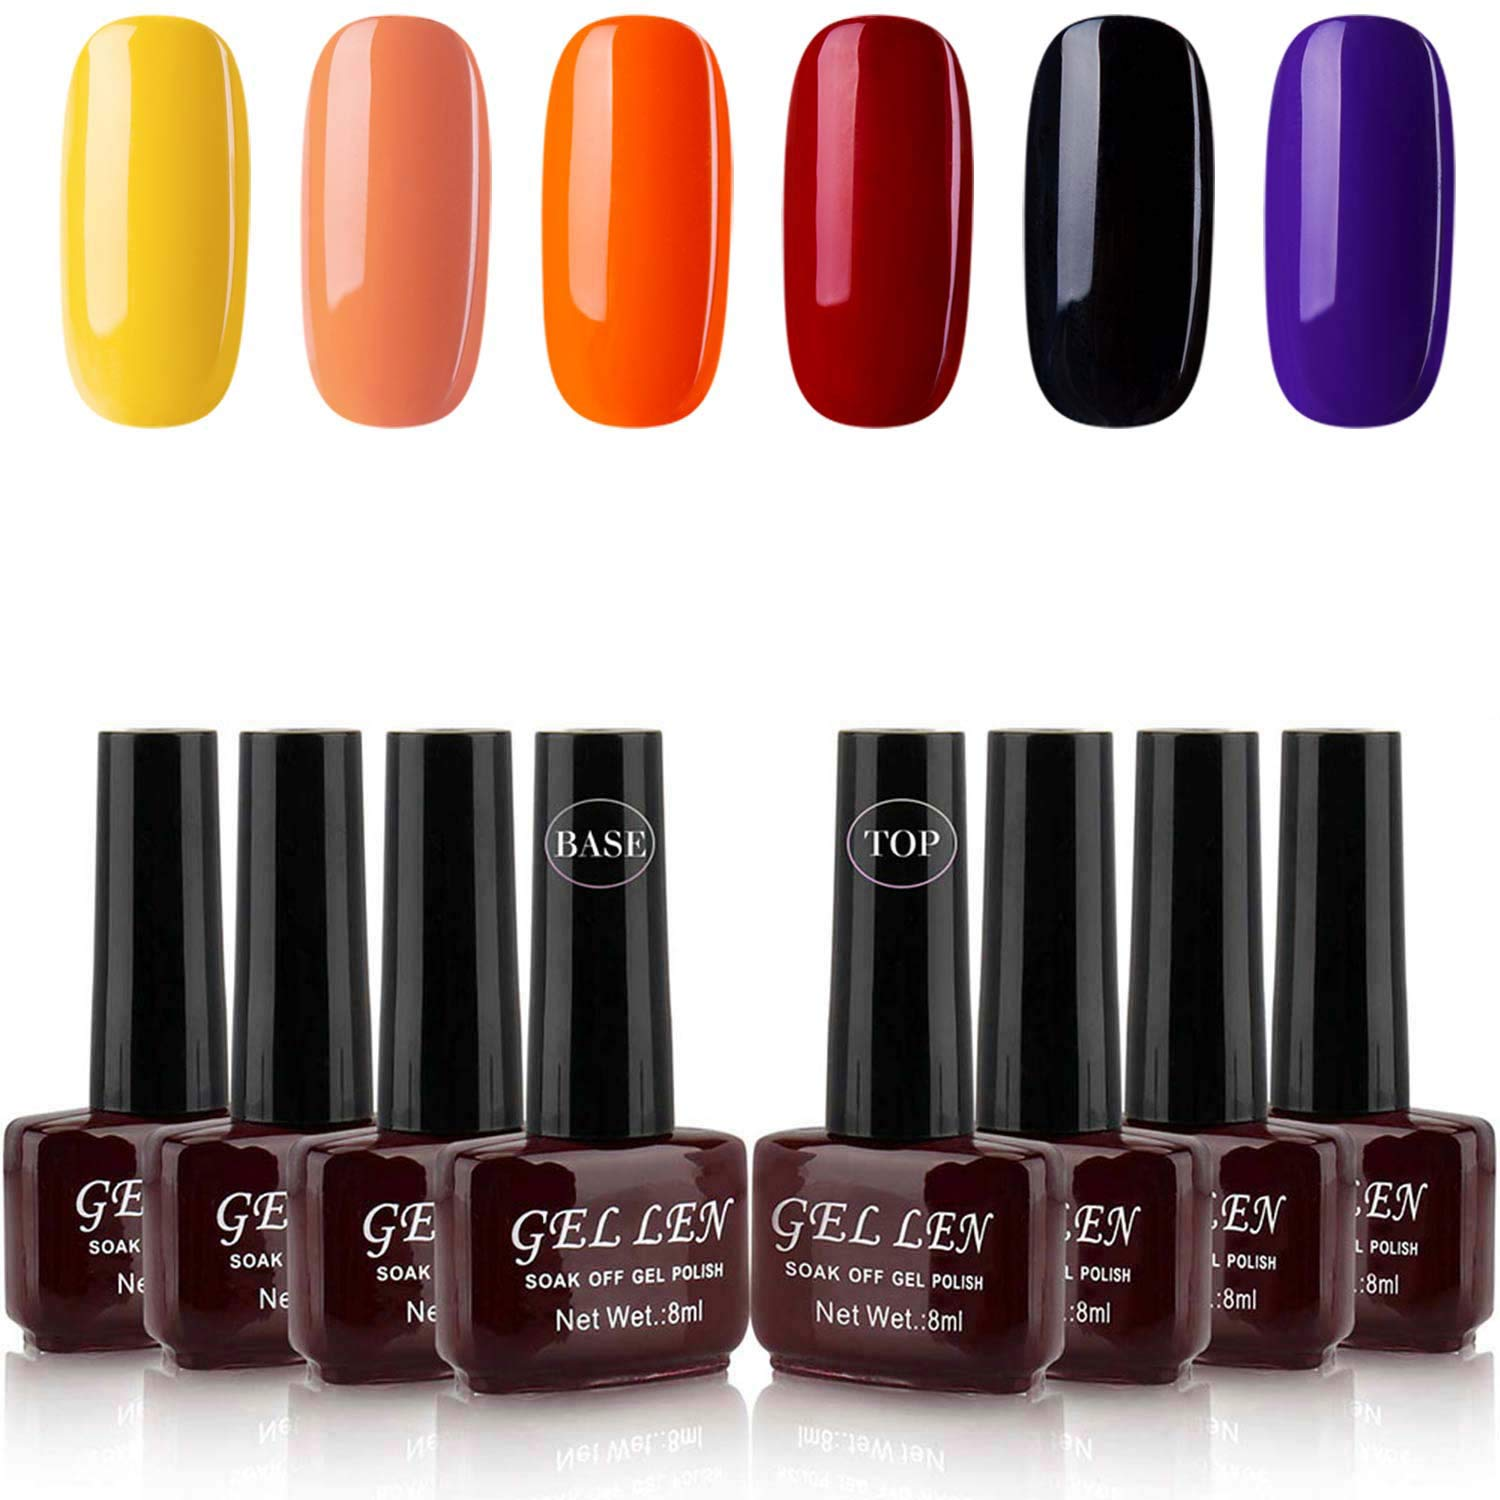 Gellen Gel Nail Polish Kit Halloween Holiday 6 Color With Top Coat Base Coat Vibrant Bright Nail Gel Colors Home Gel Manicure Set